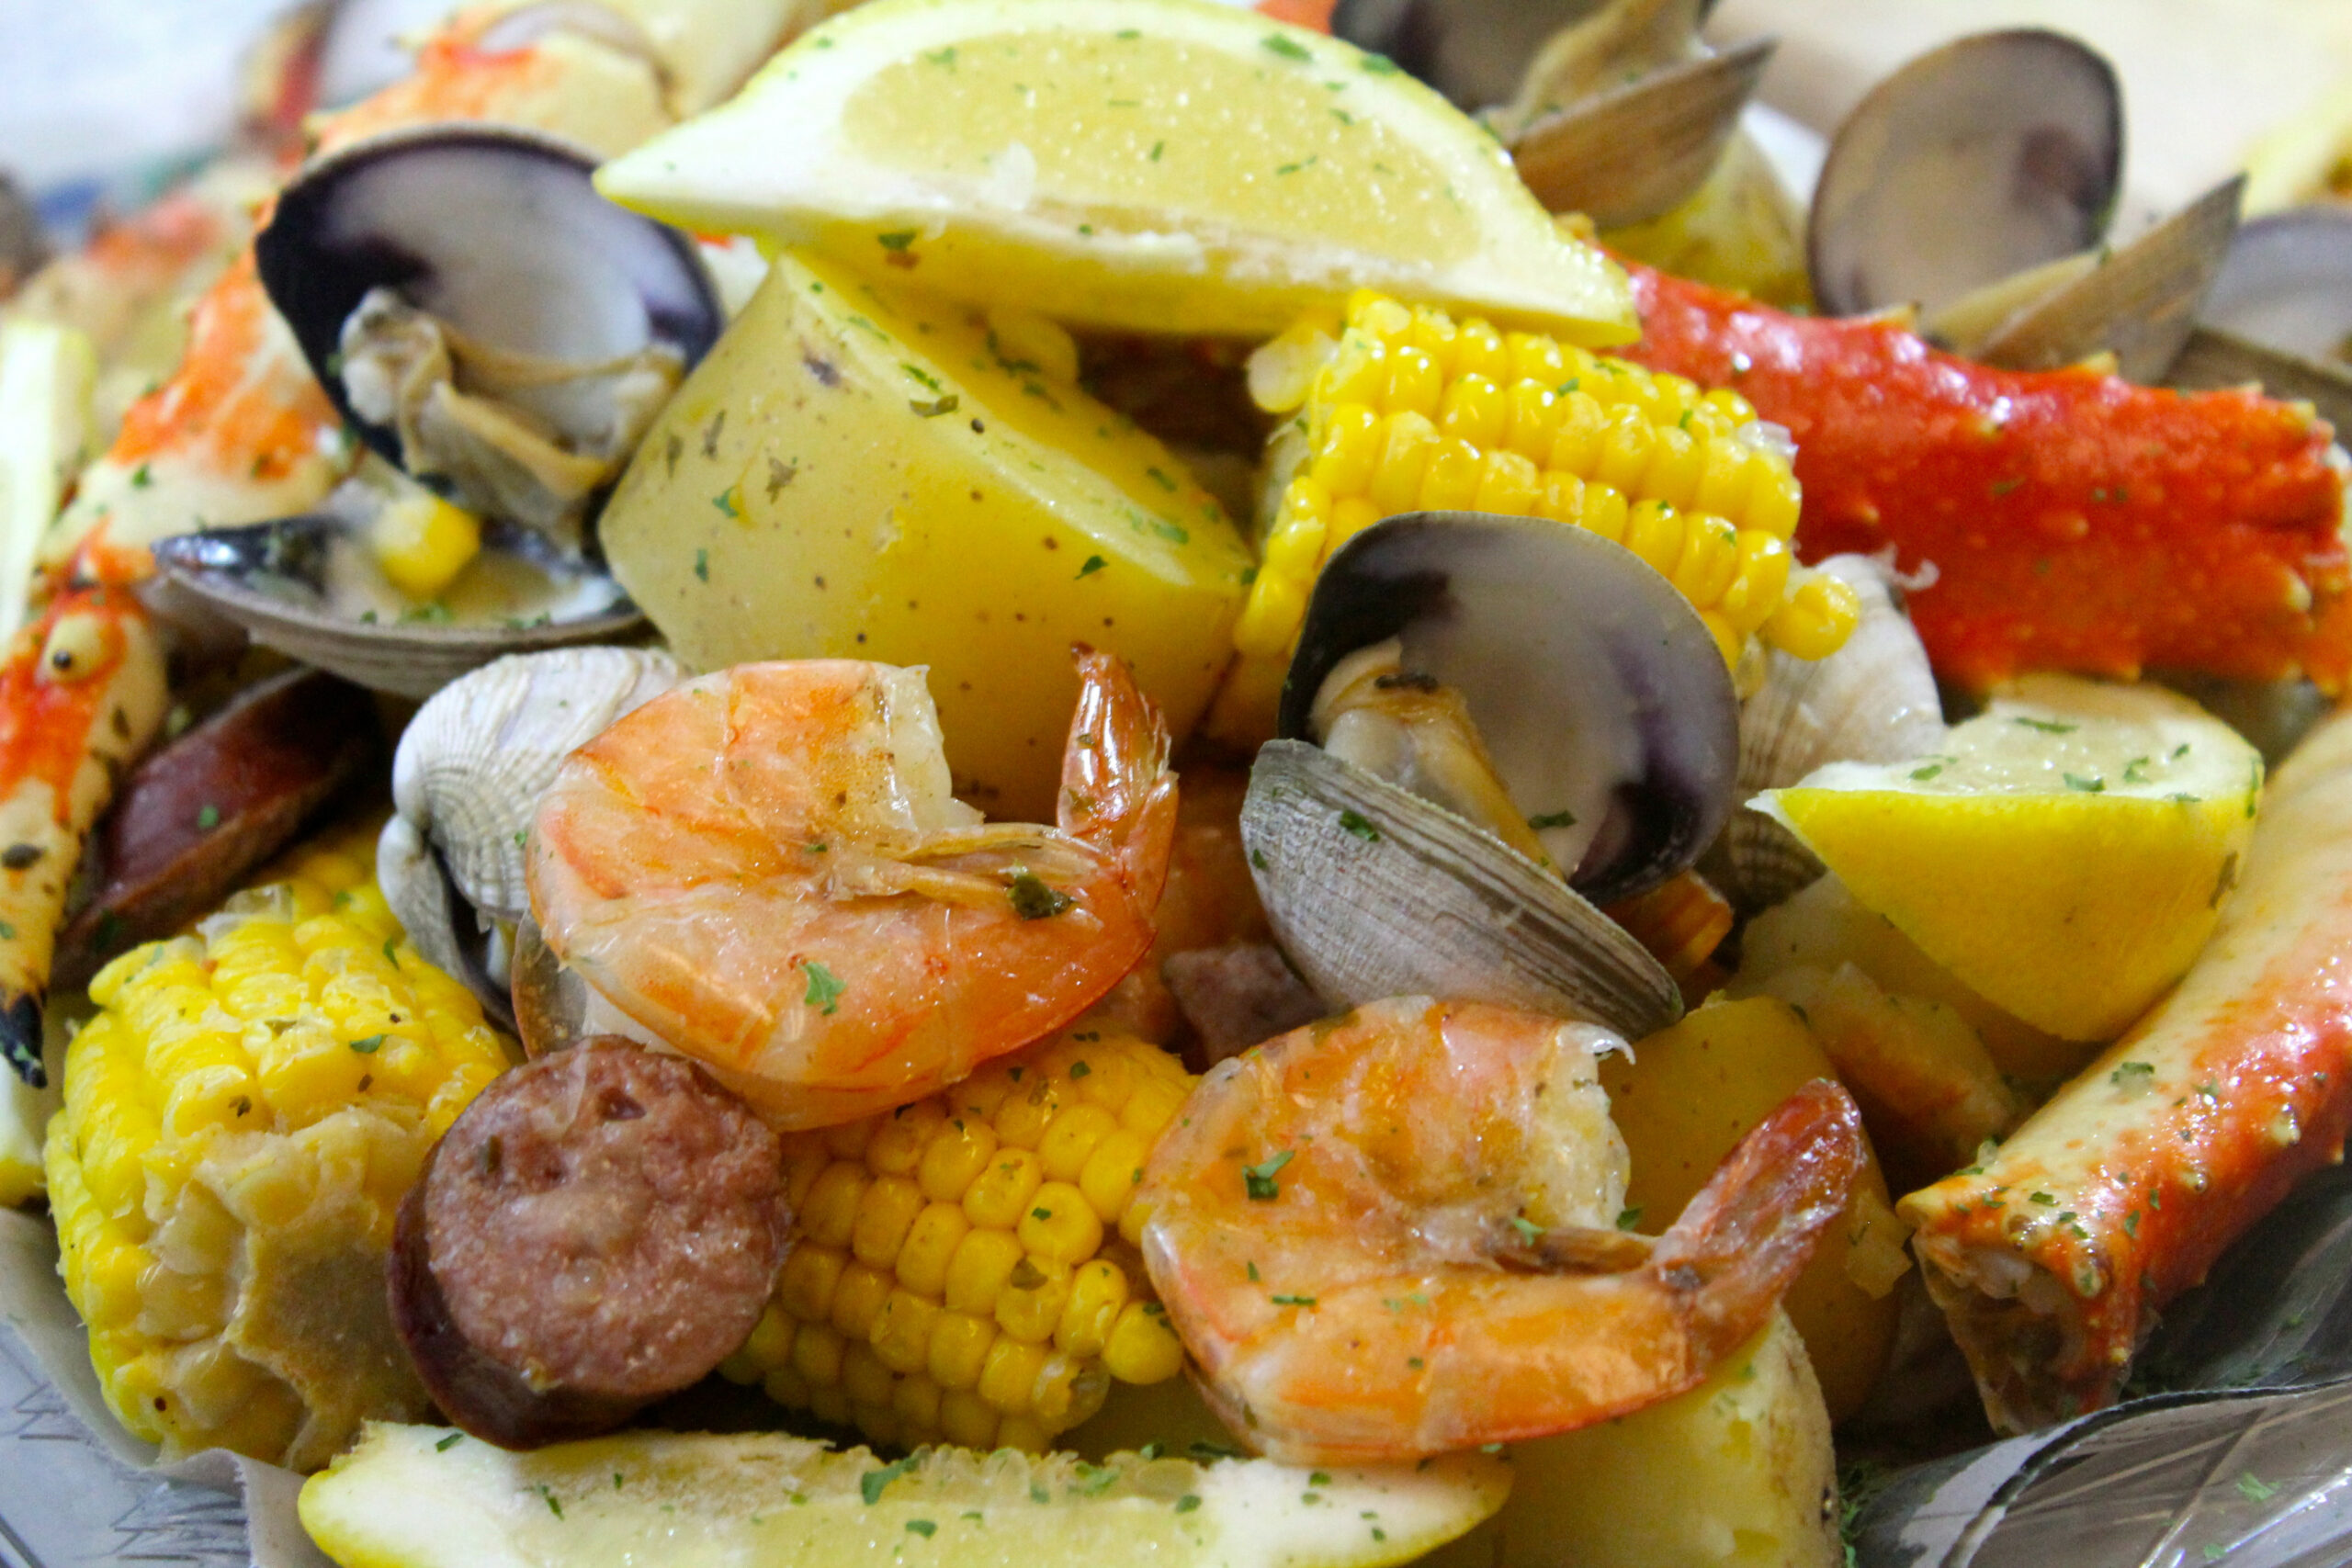 Seafood Boil with King Crab and Sausage | I Heart Recipes - recipes boiled dinner